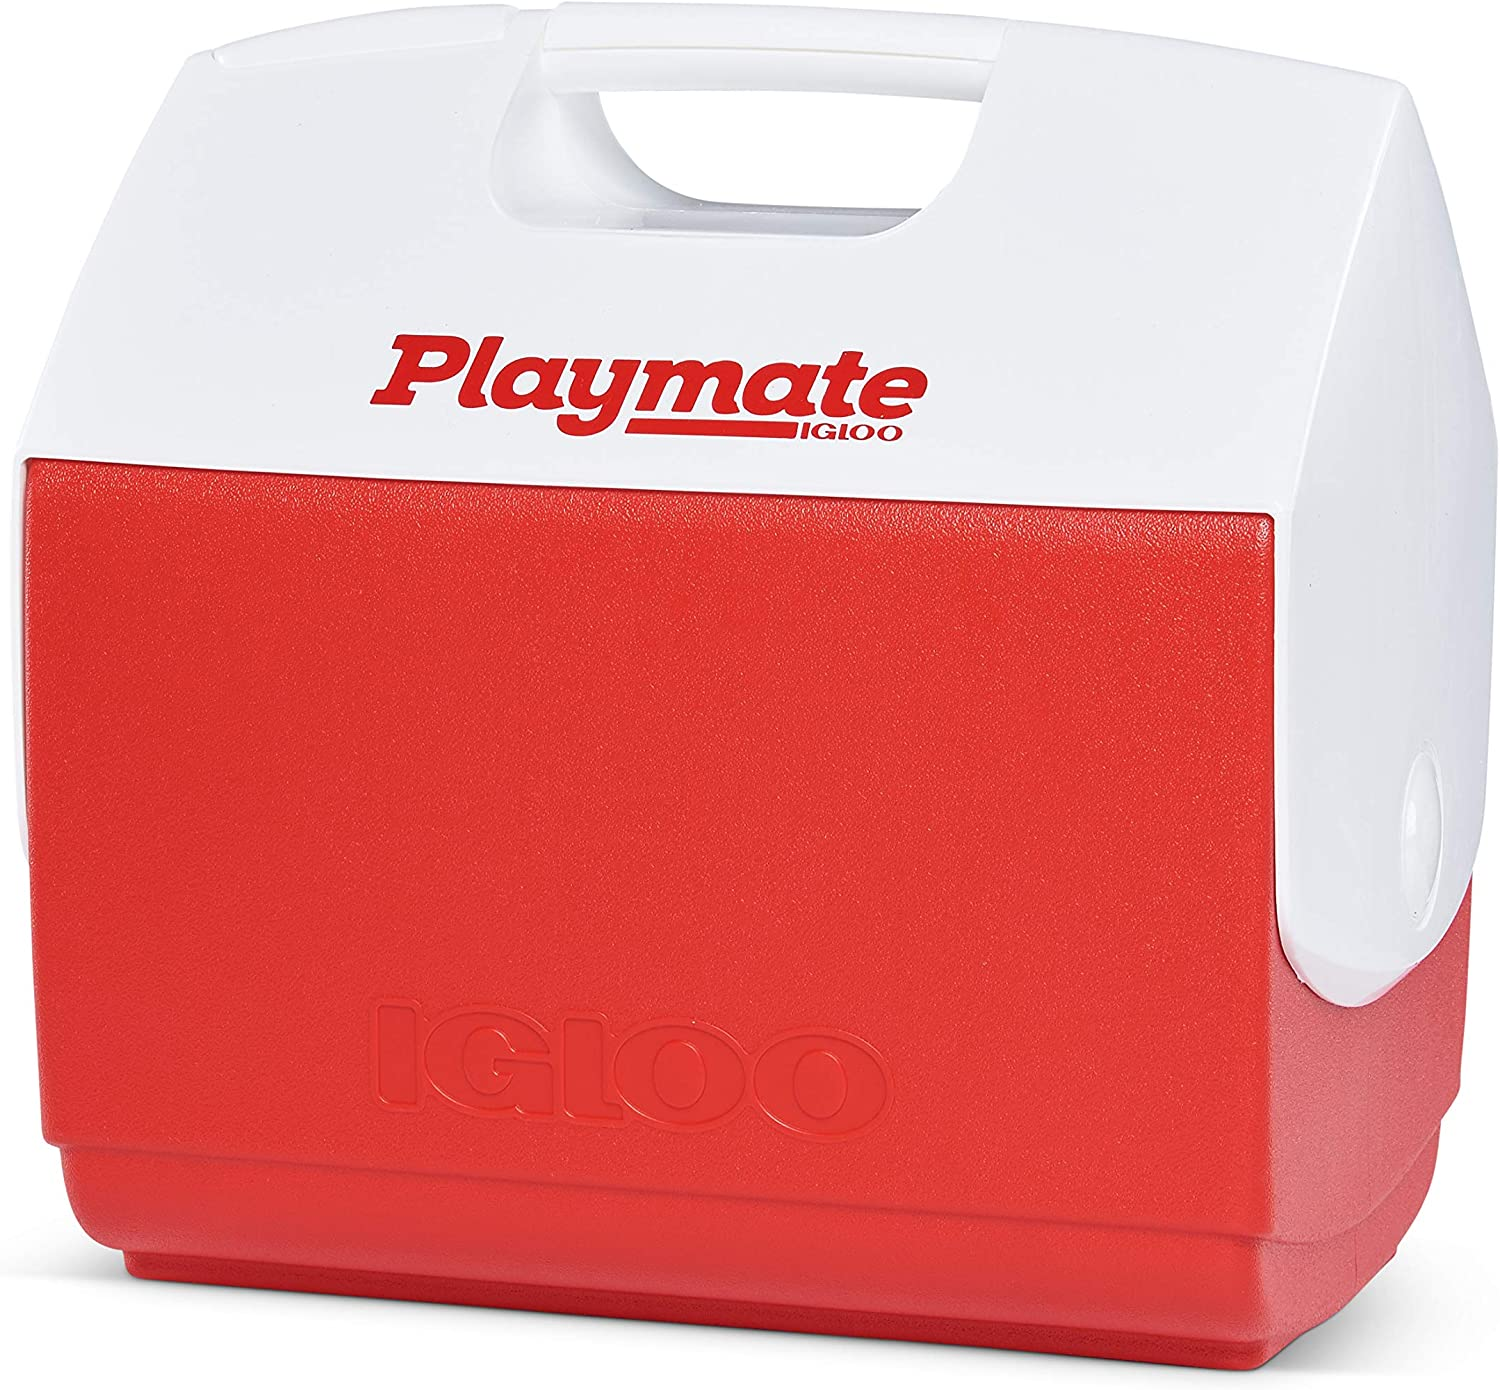 Igloo-K/ühlbox Playmate Elite 15,2 Liter rot